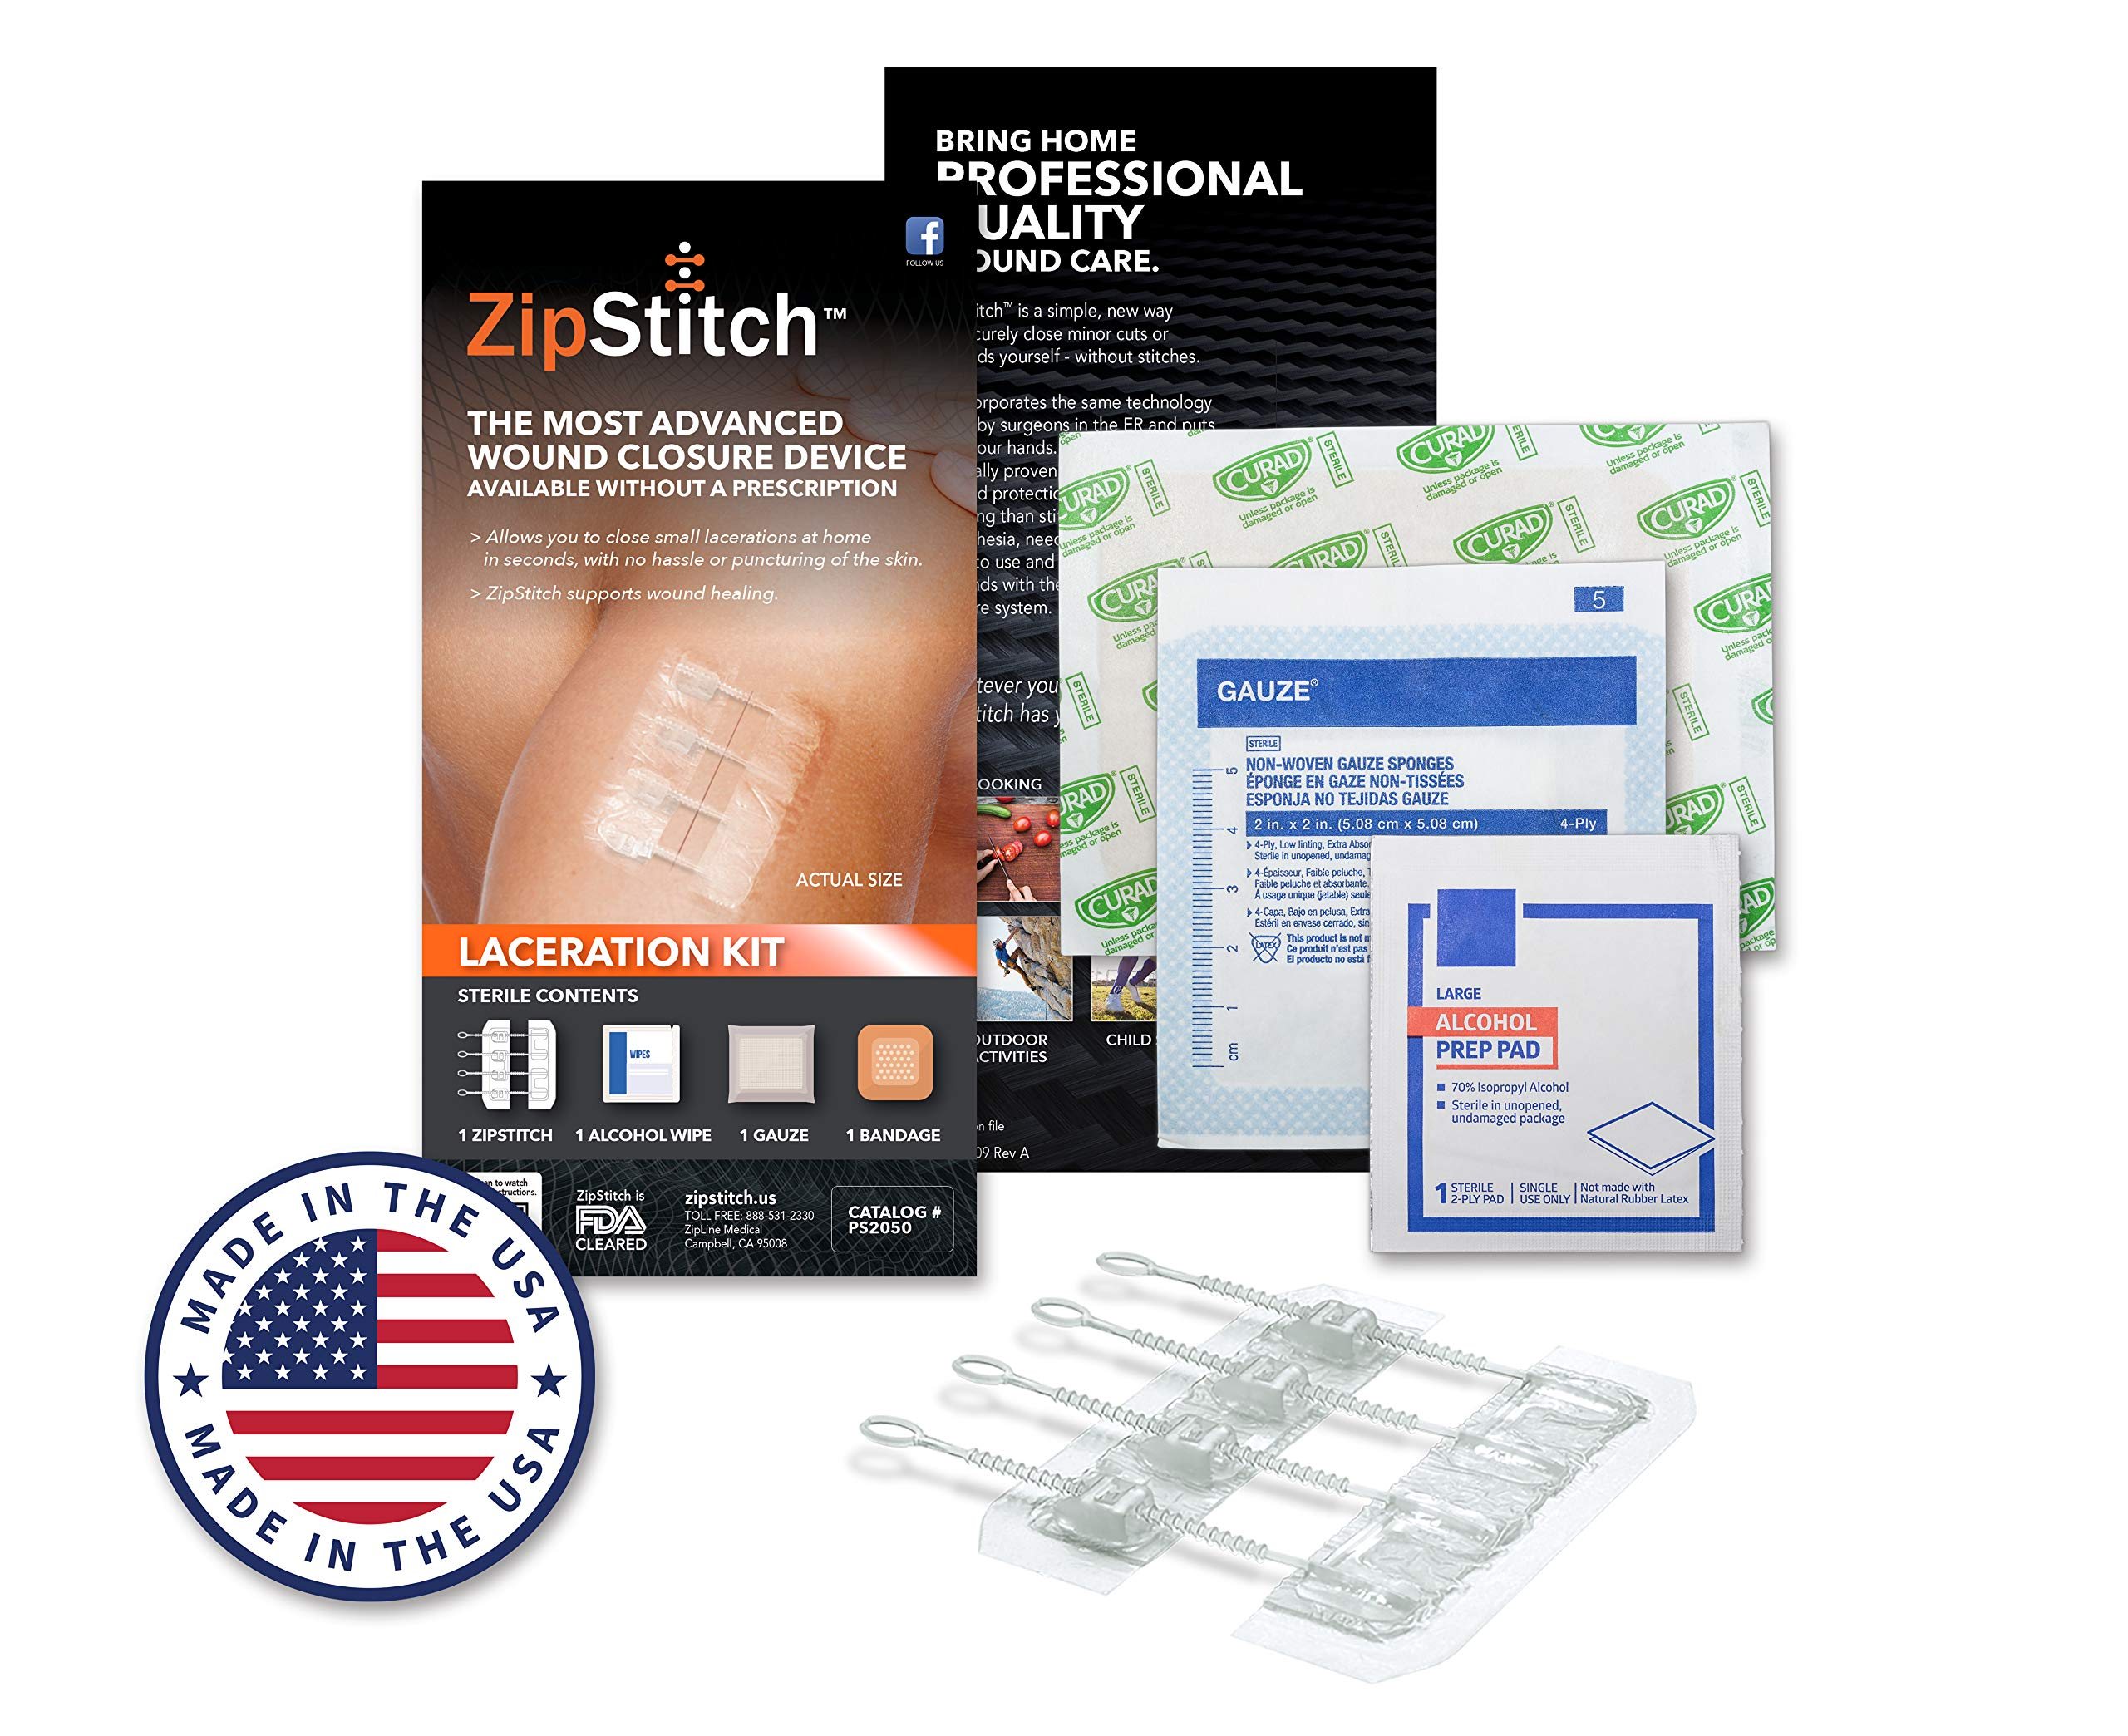 ZipStitch Laceration Kit - Surgical Quality Wound Closure (Includes one Device for Wounds up to 1.5'') for First Aid Kit, Car Kit, Outdoor/Survival Kit, Travel, Camping, Hunting, Hiking by ZipLine